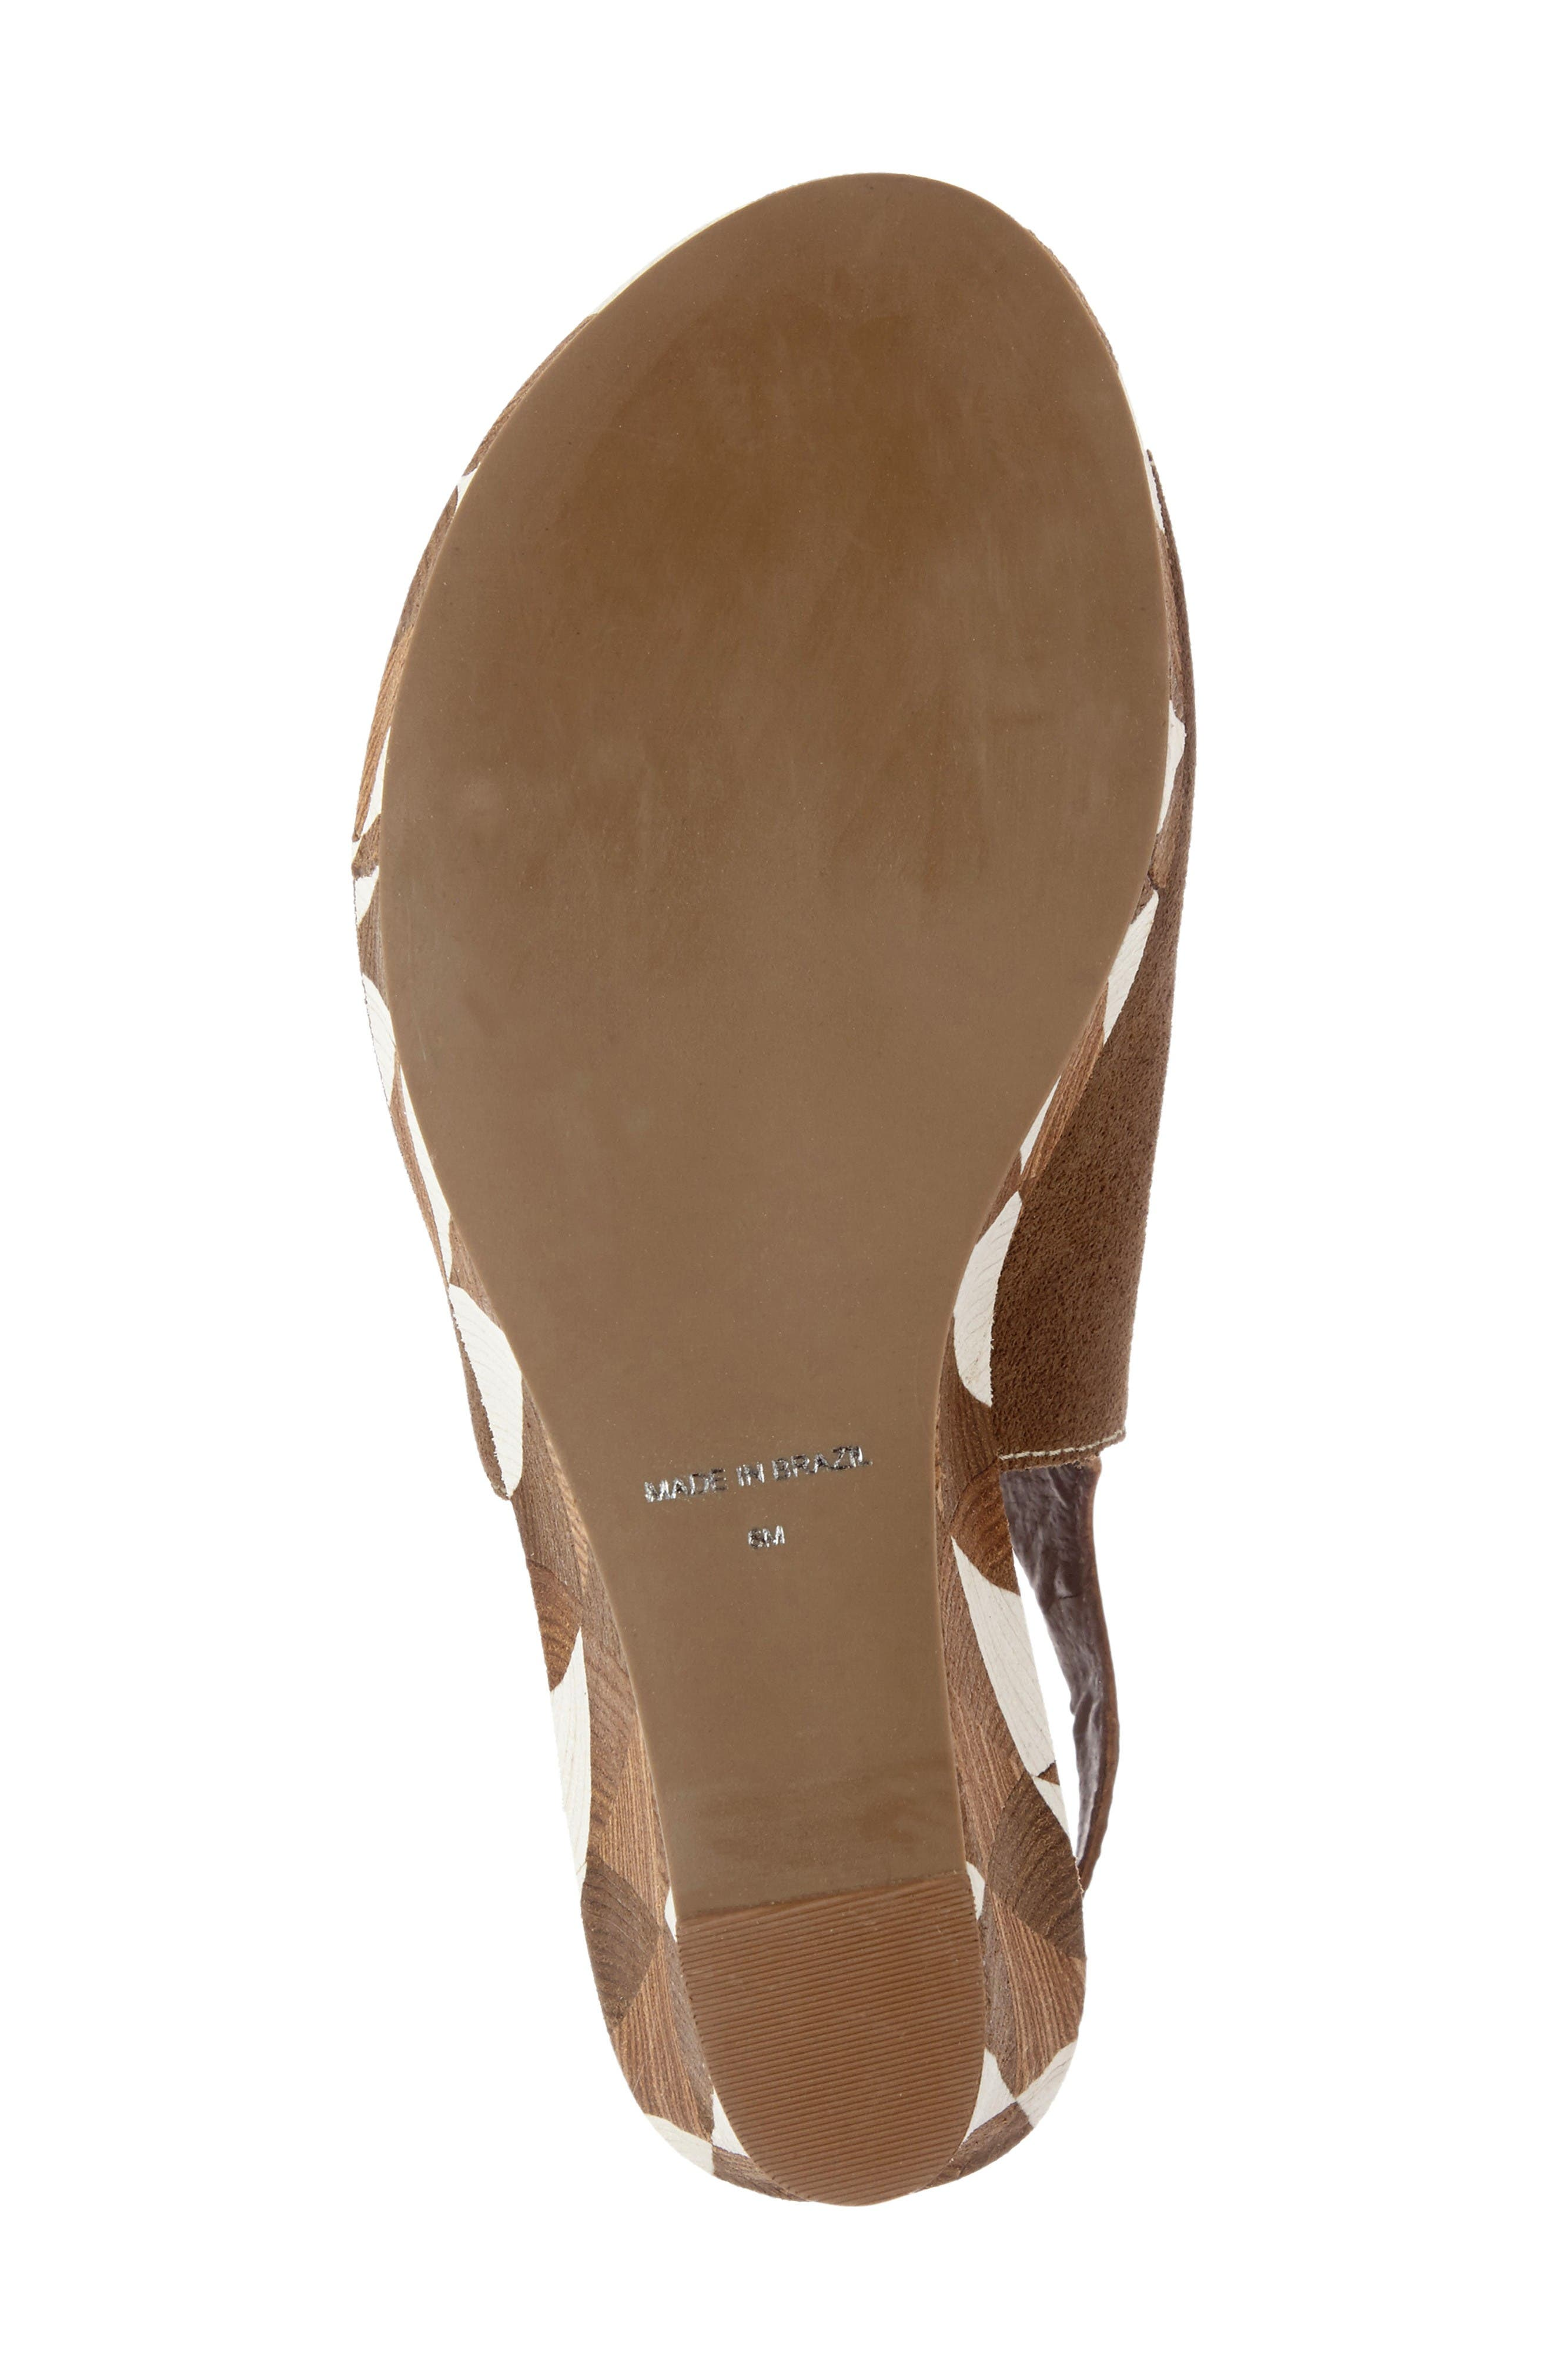 Harlequin Wedge Sandal,                             Alternate thumbnail 5, color,                             Taupe Leather